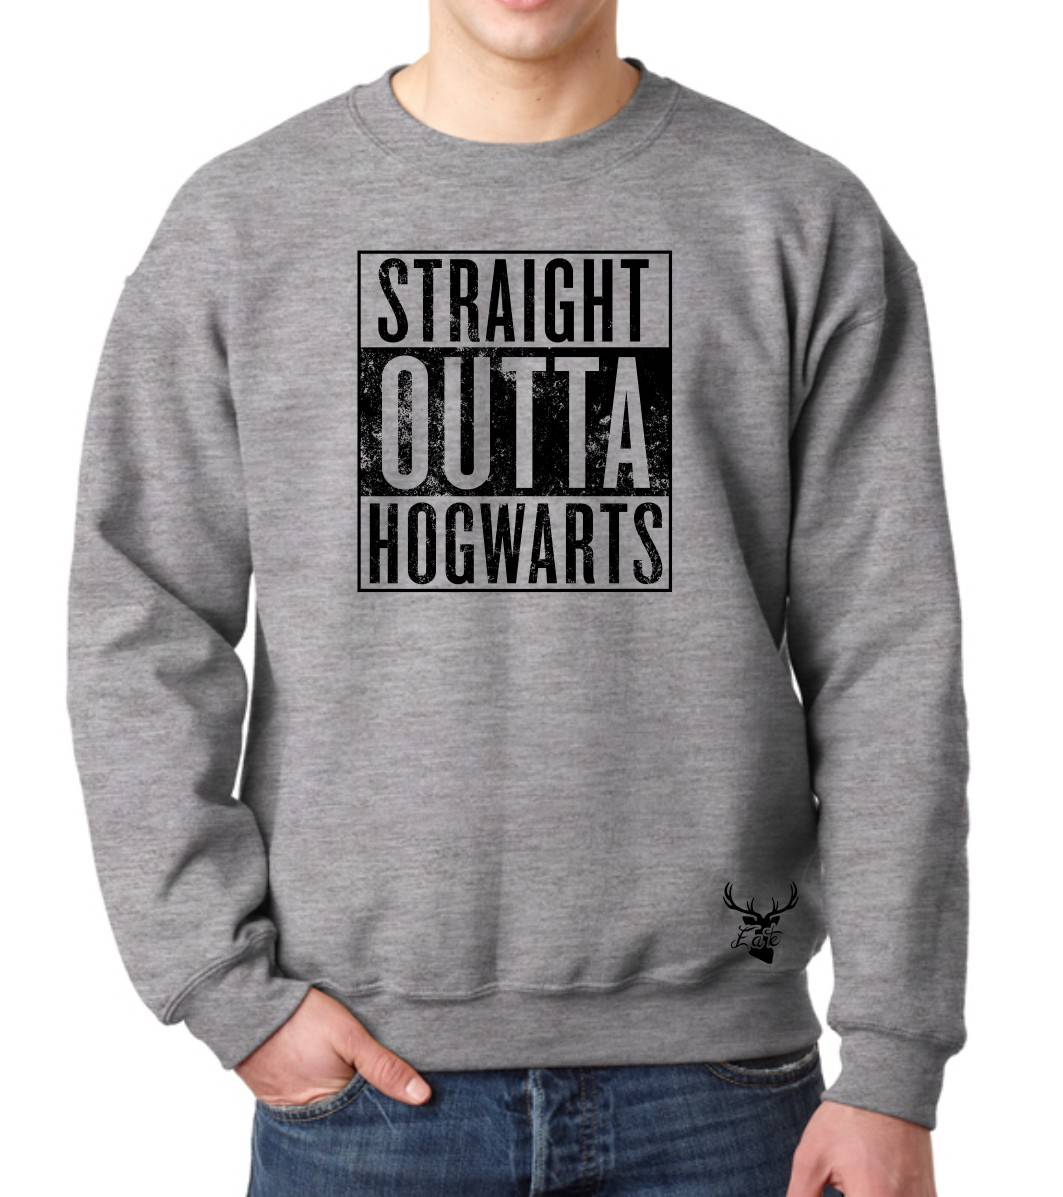 STRAIGHT OUTTA HOGWARTS FLEECE